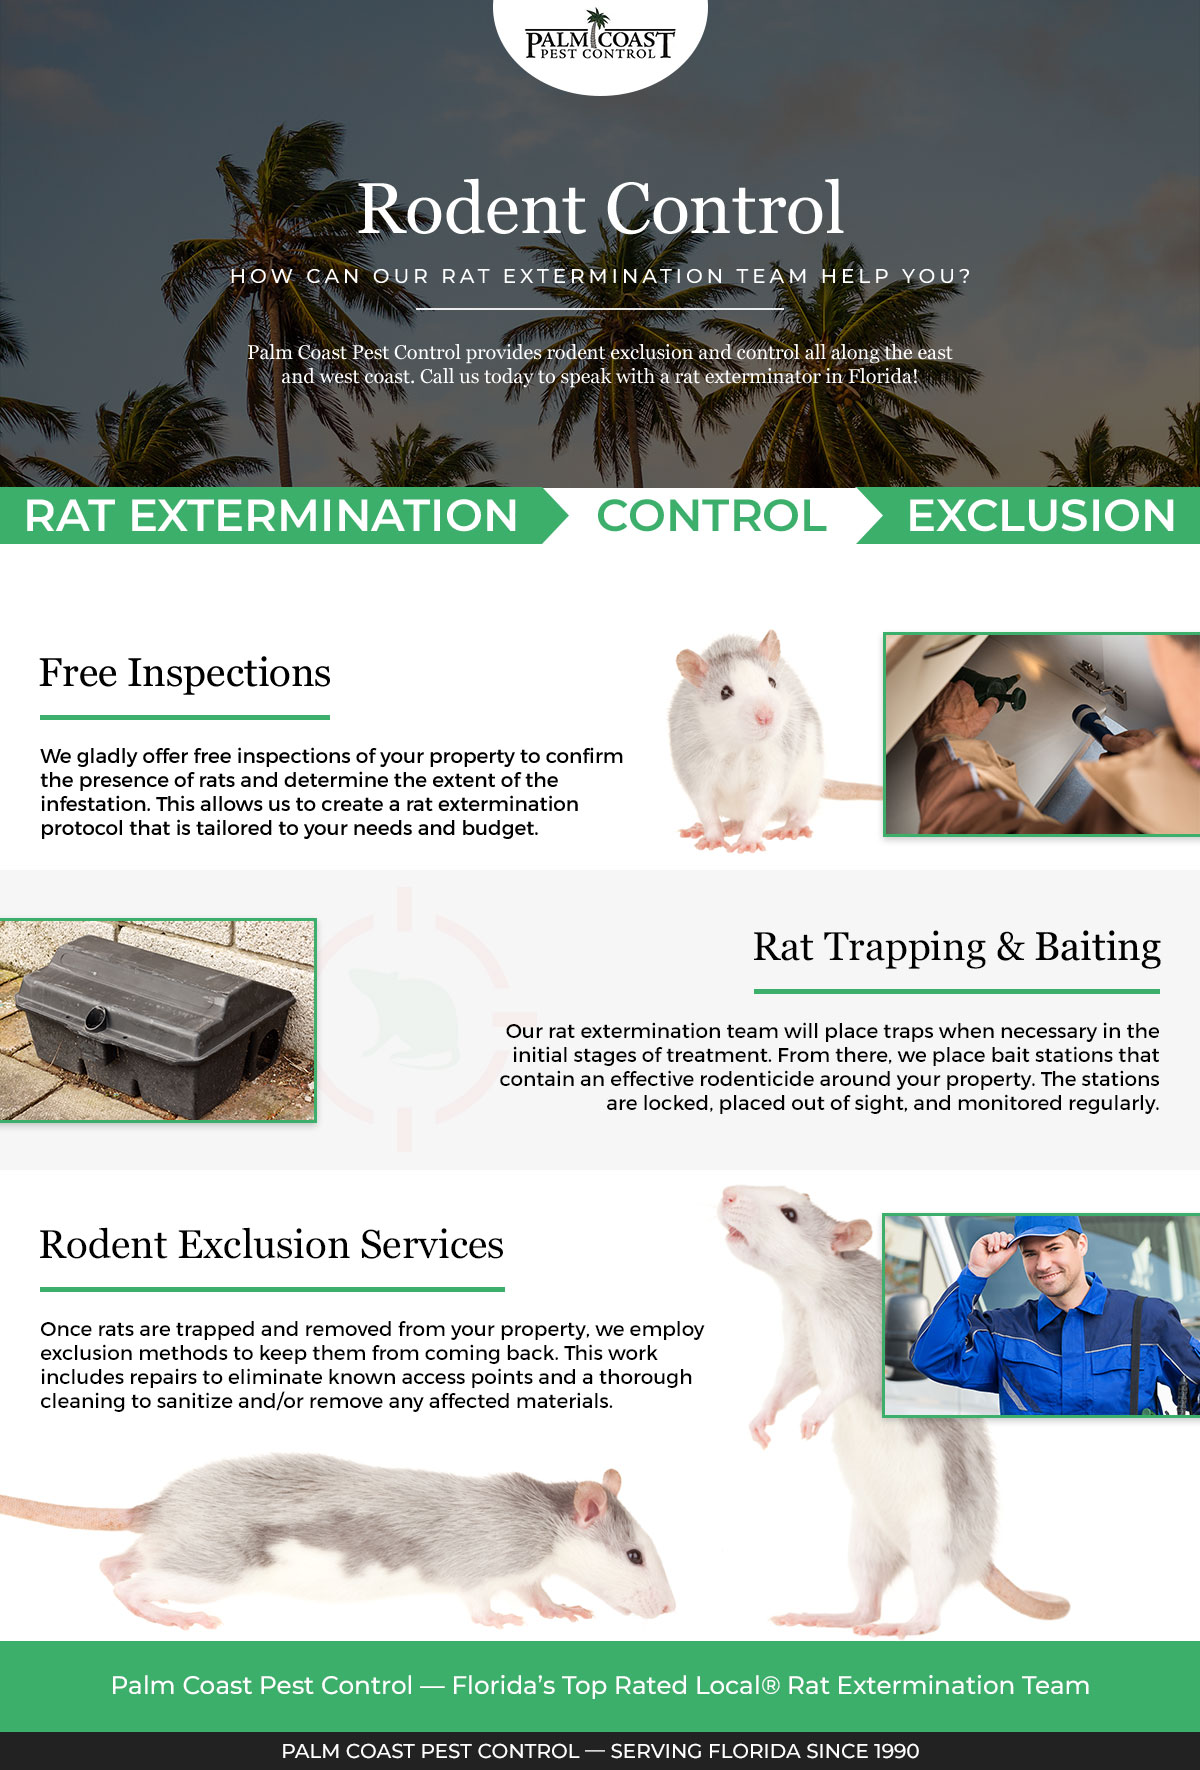 Rodent Control Jupiter: Enjoy a Rat-Free Home with Rodent